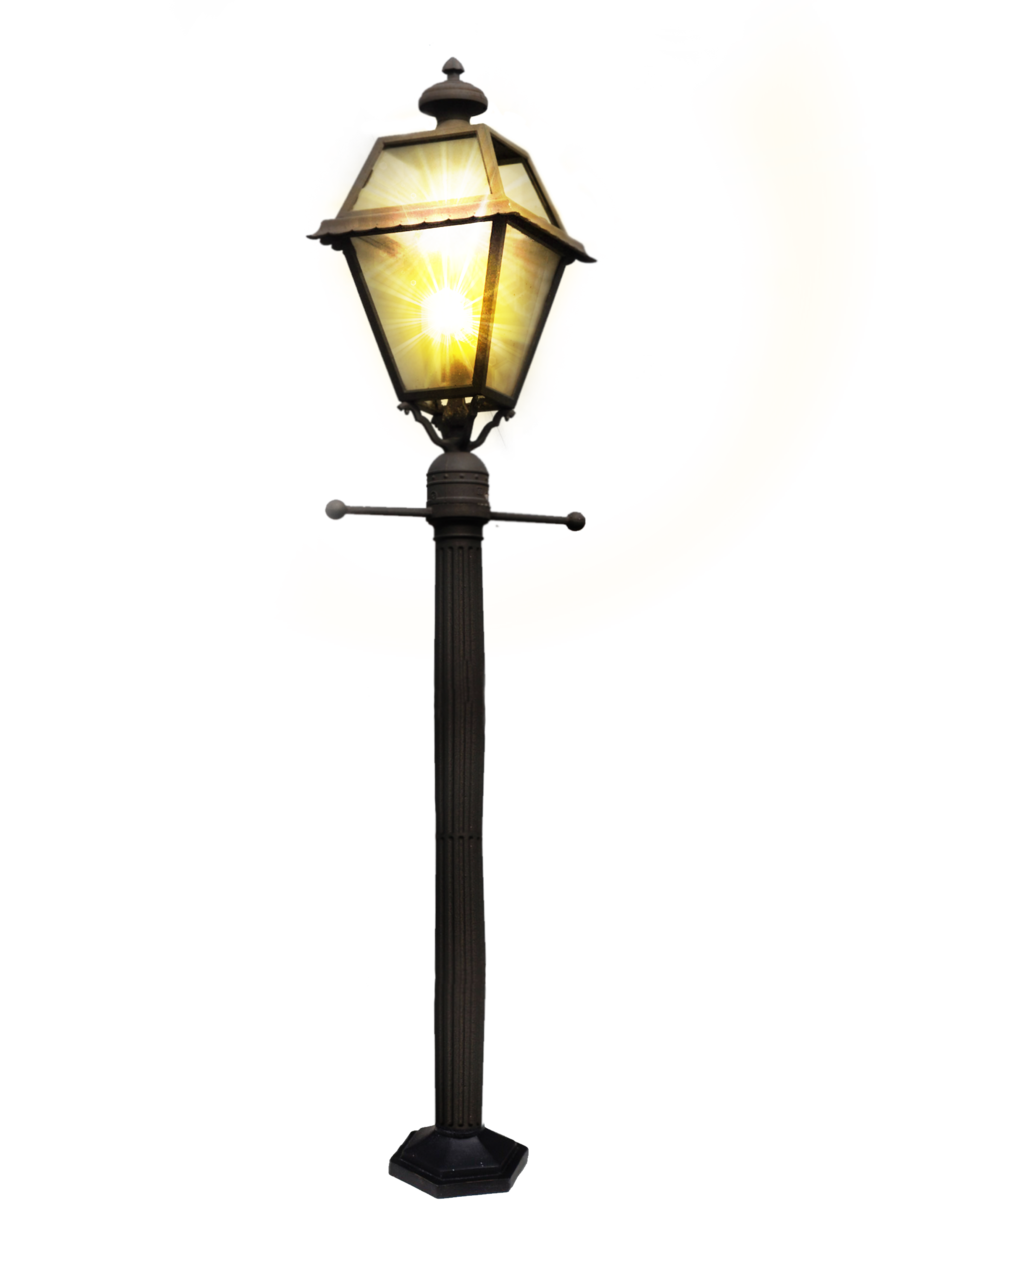 Antique street lamp clipart clipart suggest for Exterior lamp png